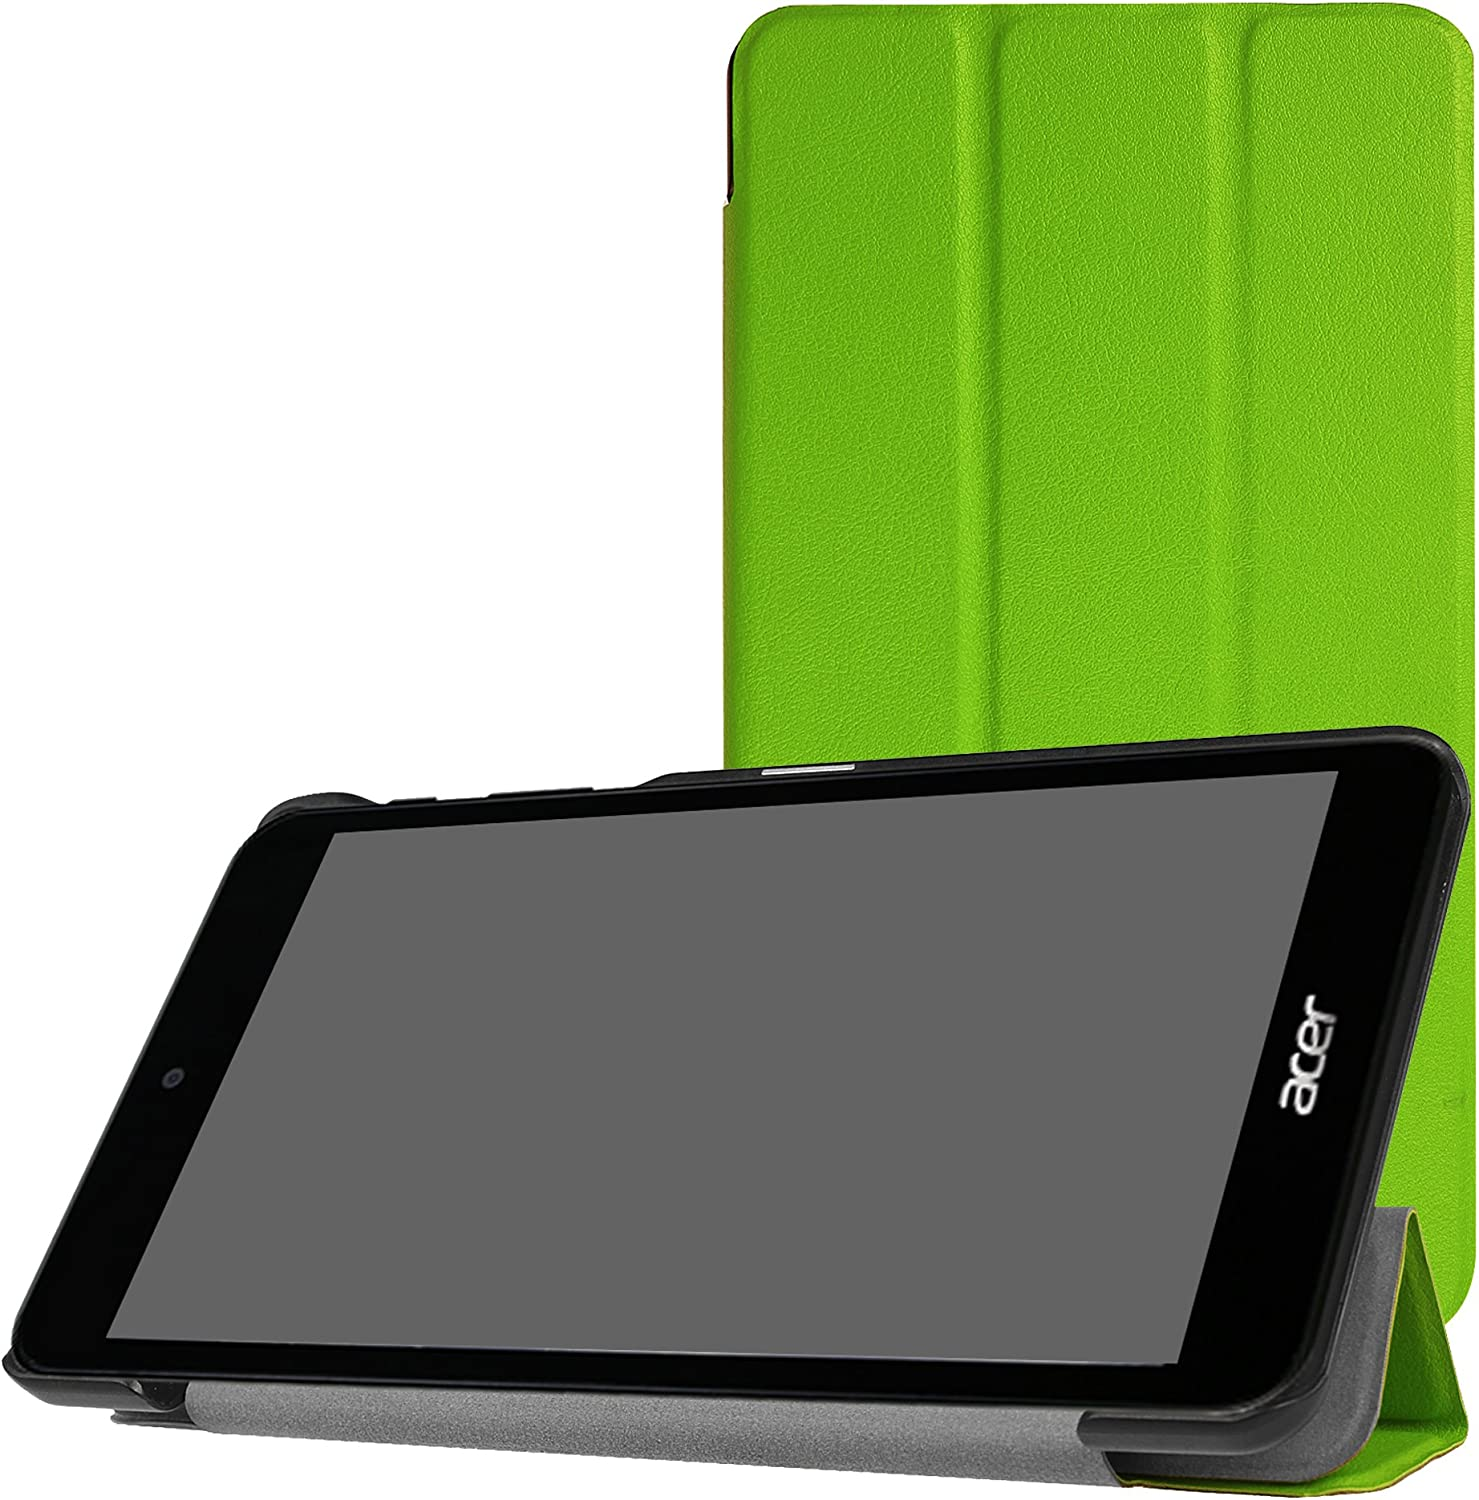 Acer Iconia One 7 B1-790 Slim Shell Case,Mama Mouth Ultra Lightweight PU Leather Standing Cover for Acer Iconia One 7 B1-790 7.0-Inch Tablet [with auto Wake/Sleep Feature],Green